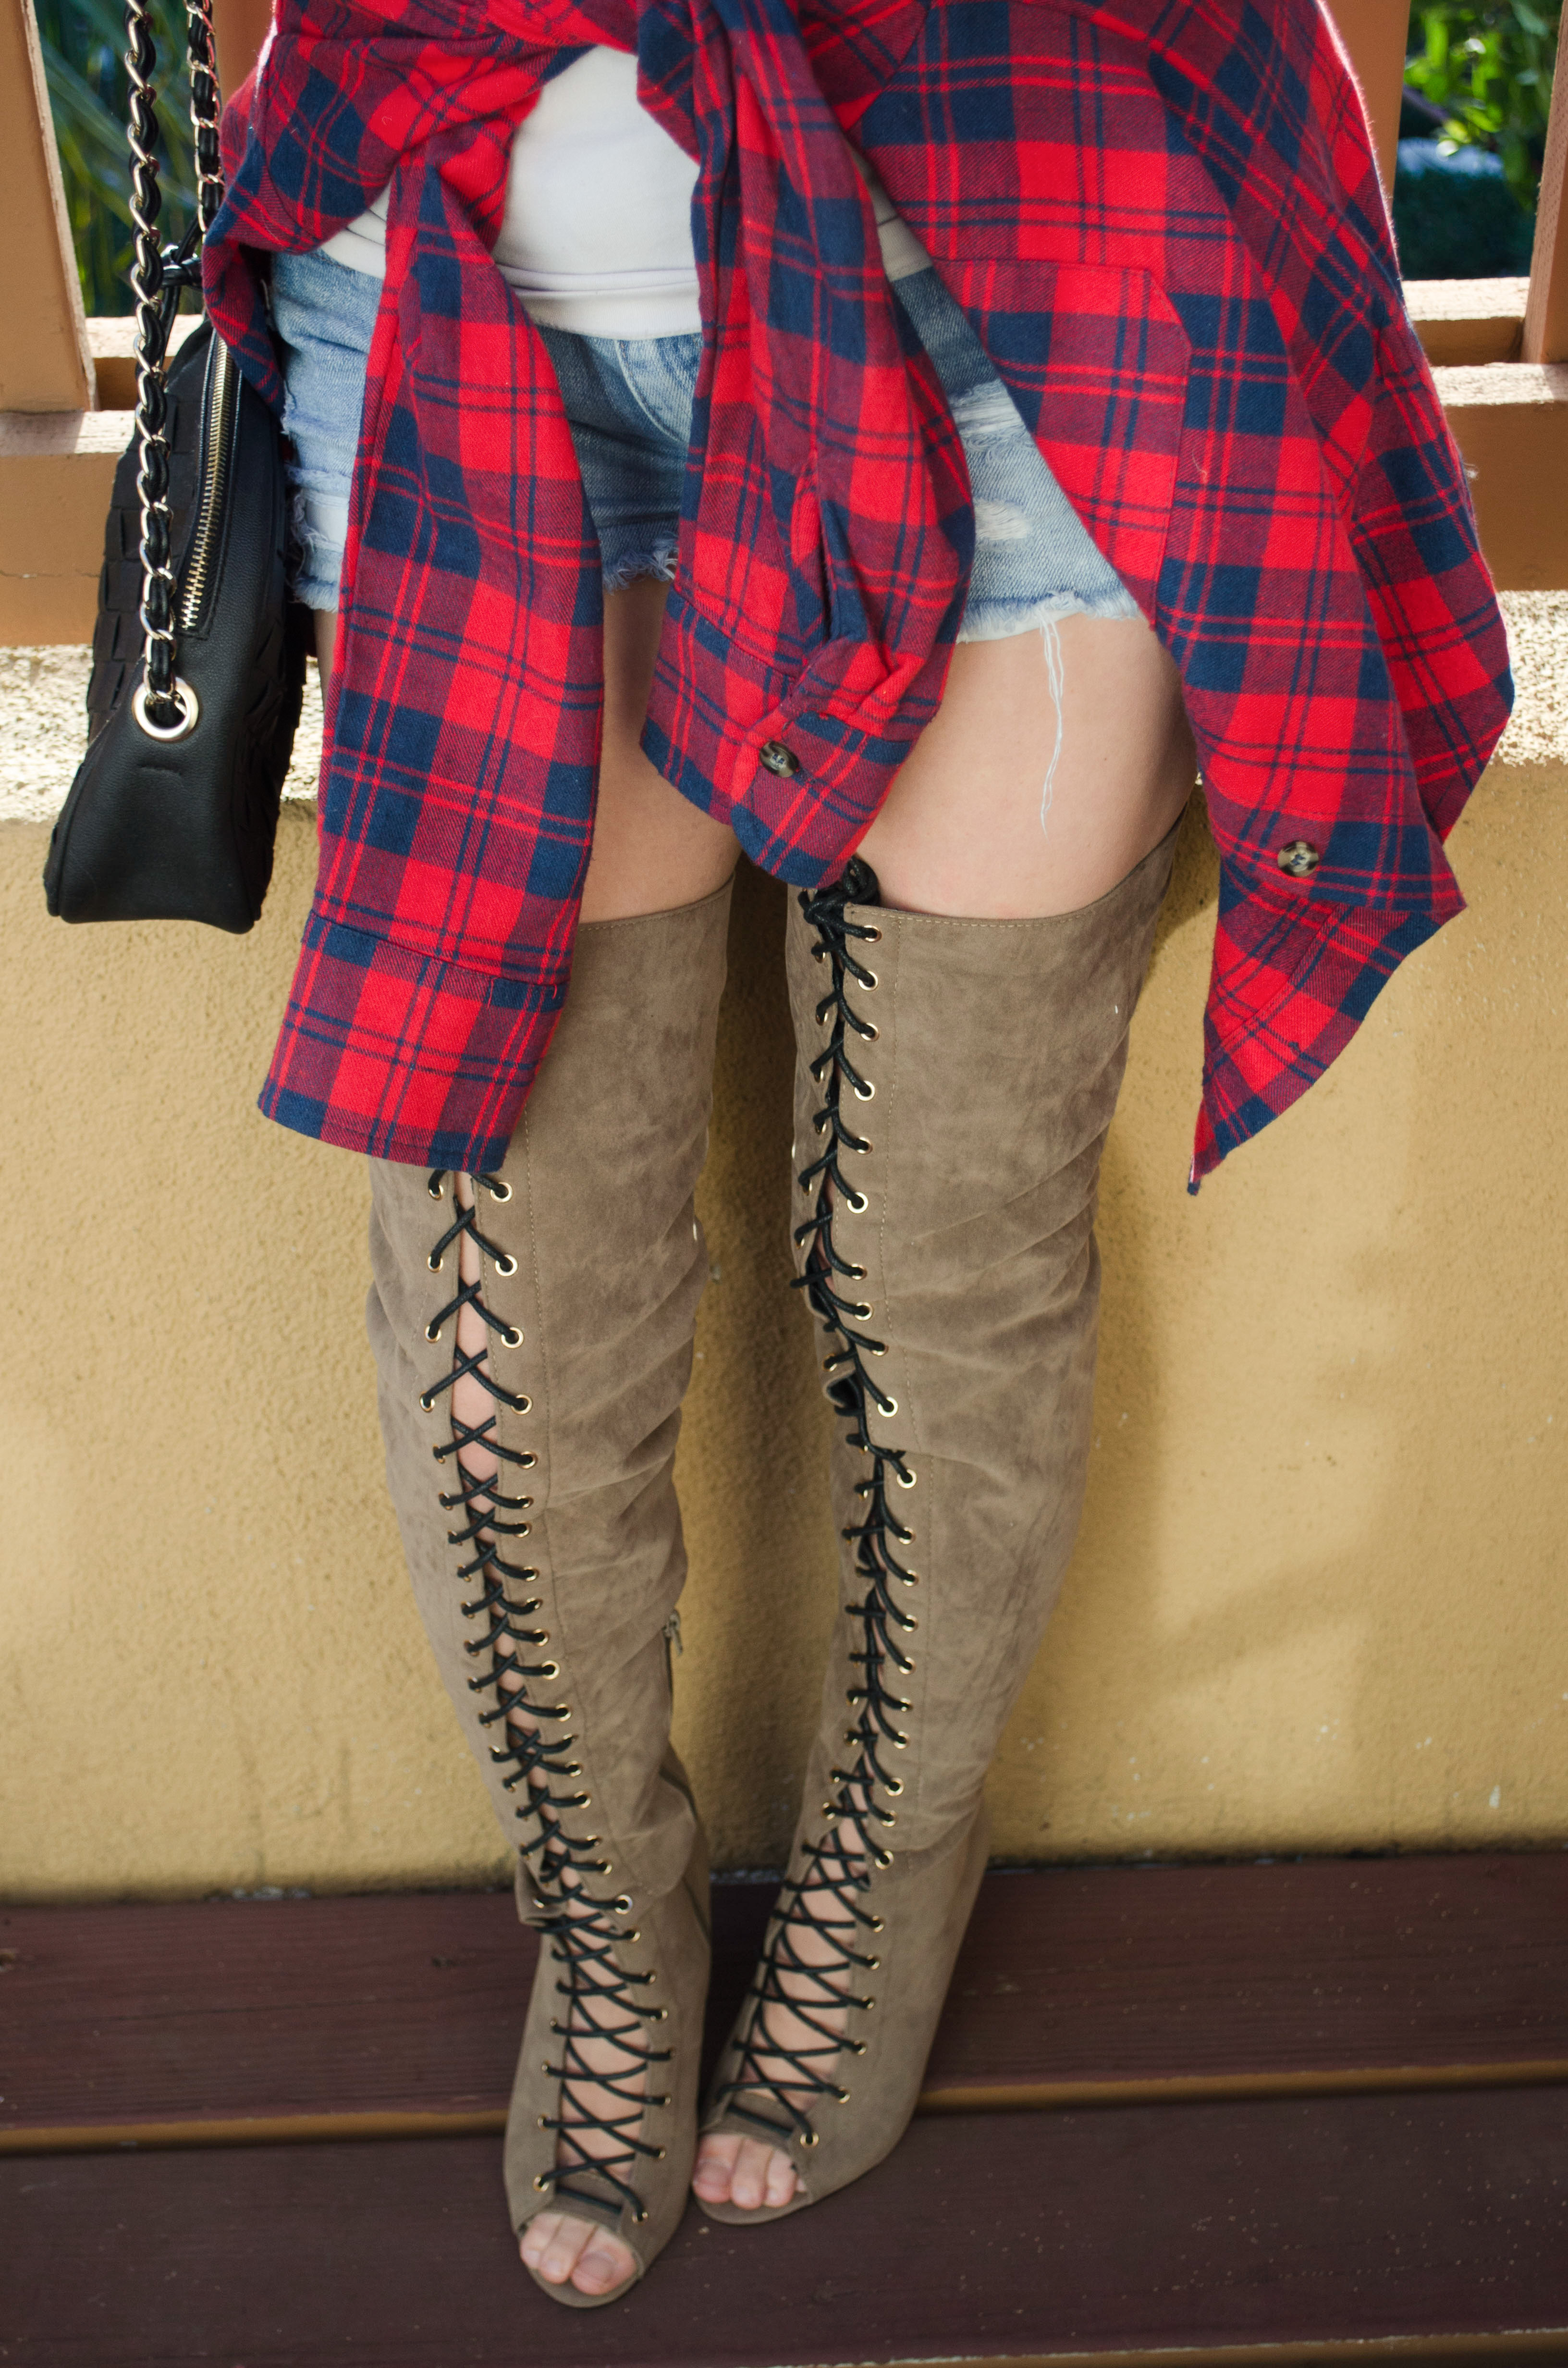 red flannel, jean shorts, lace up boots pic 4